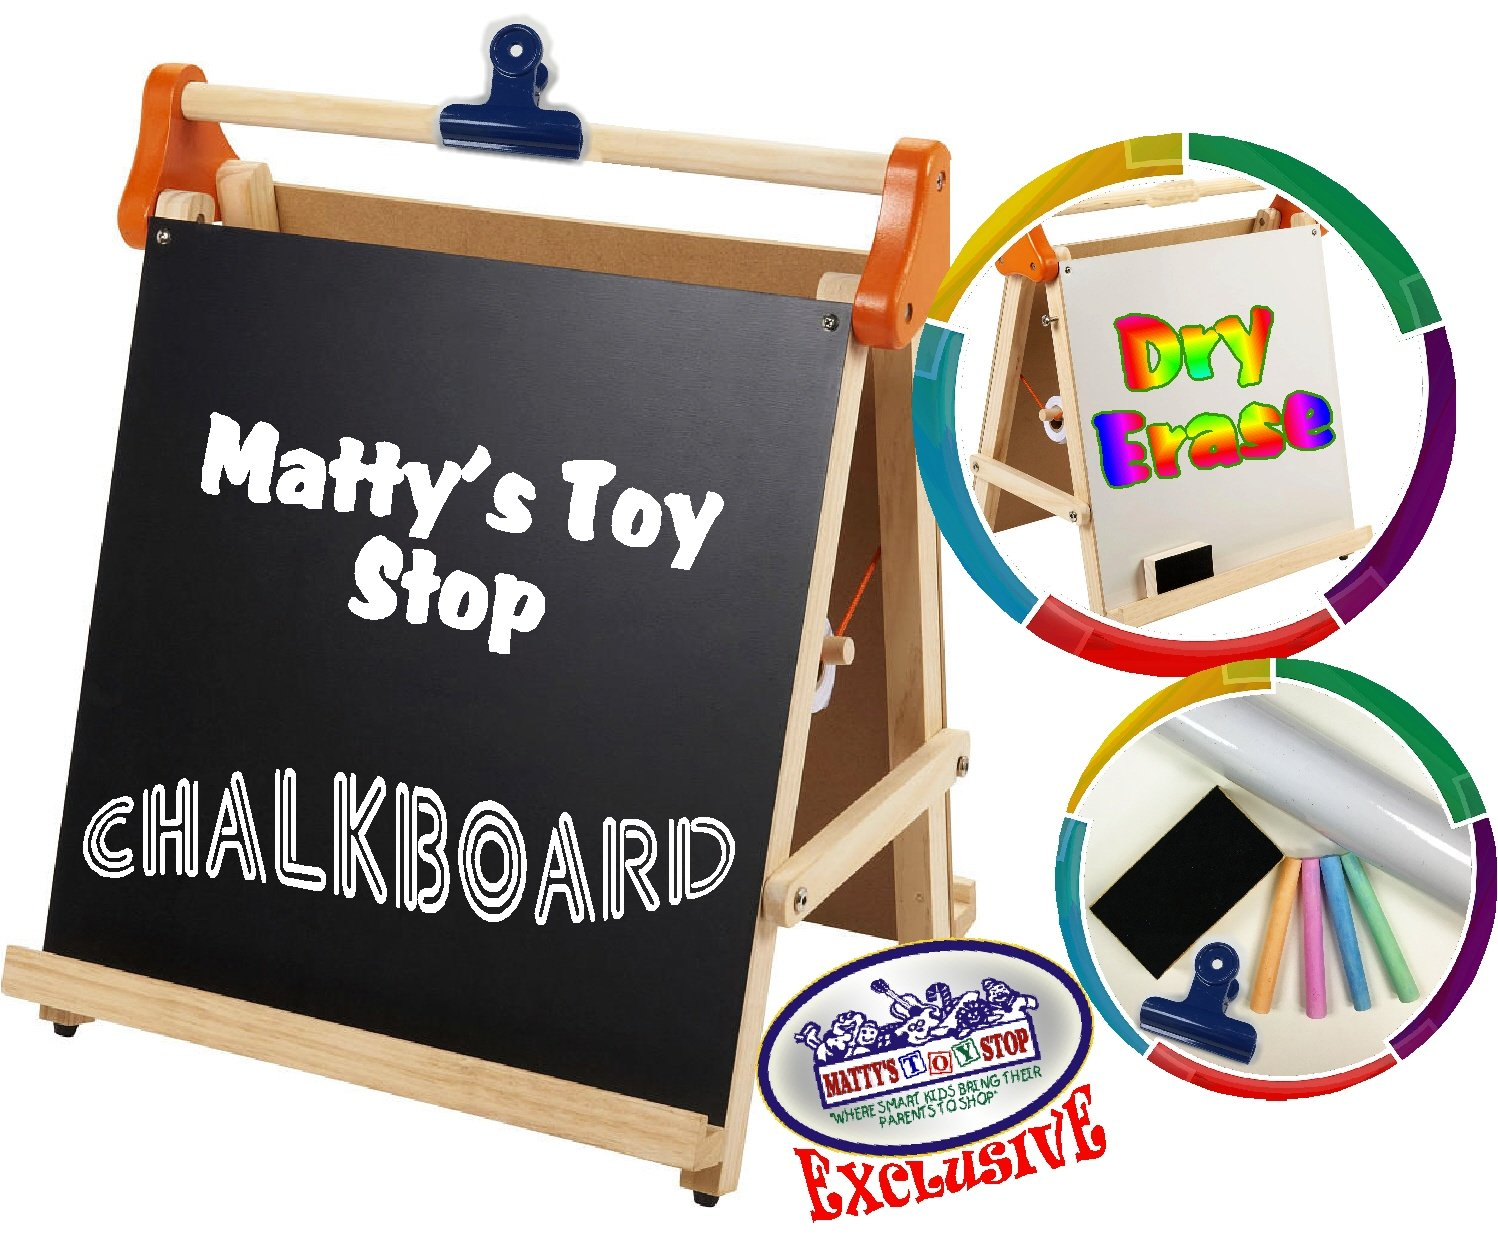 Paper Clip /& Accessories Exclusive Homeware 5275 Paper Roll Dry Erase Mattys Toy Stop Deluxe 3-in-1 Wooden Tabletop Easel with Blackboard